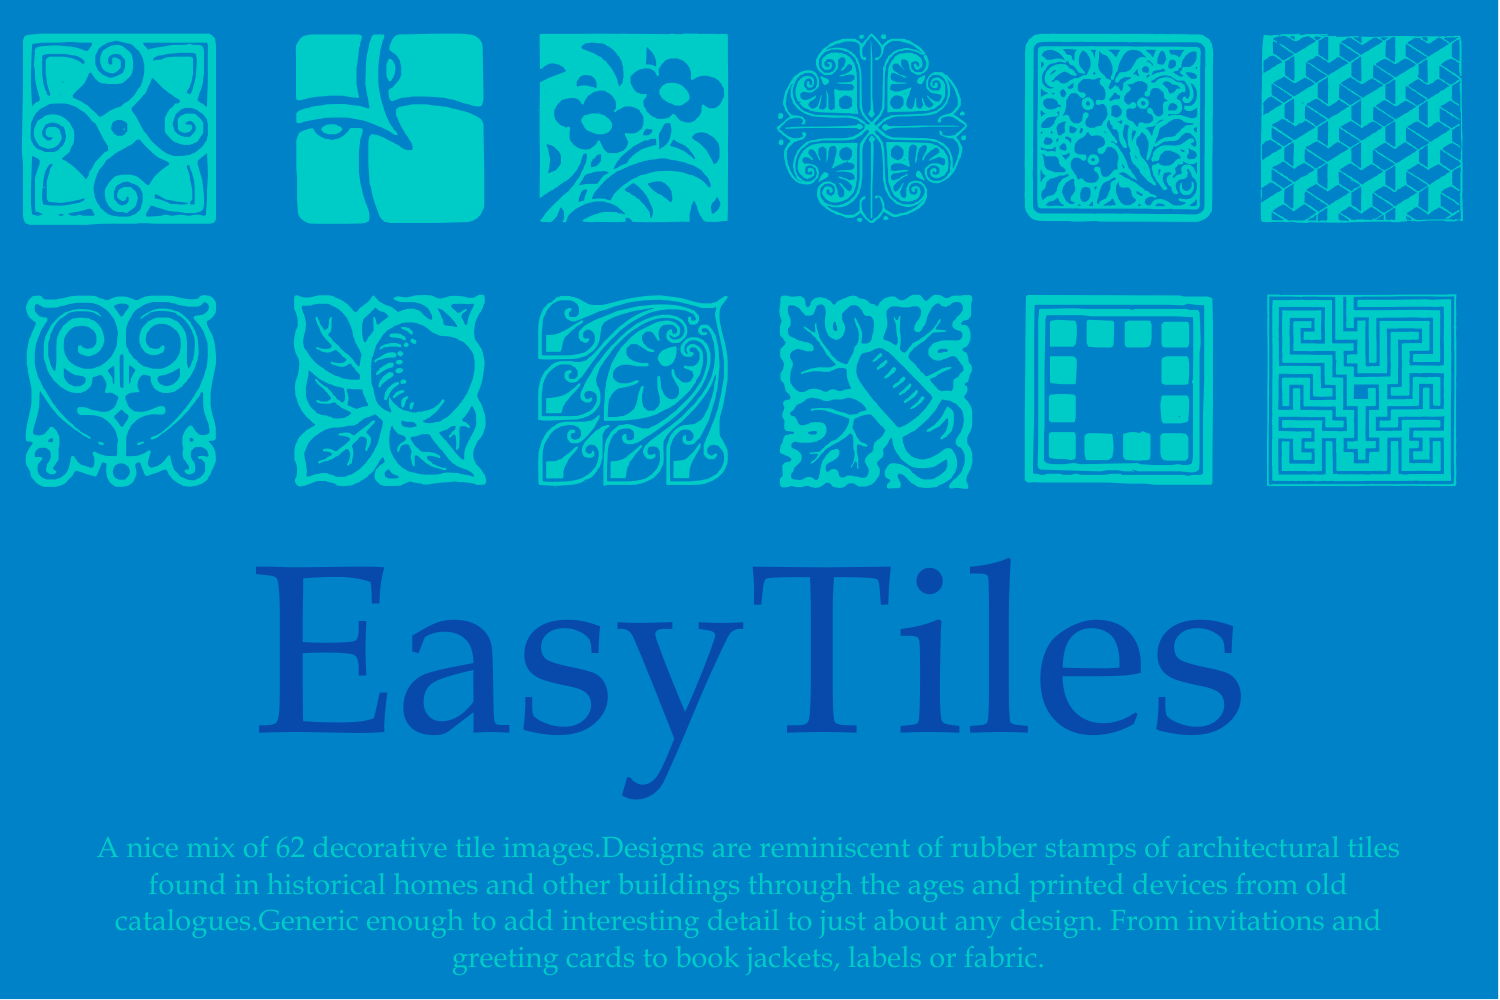 Easy Tiles One example image 2